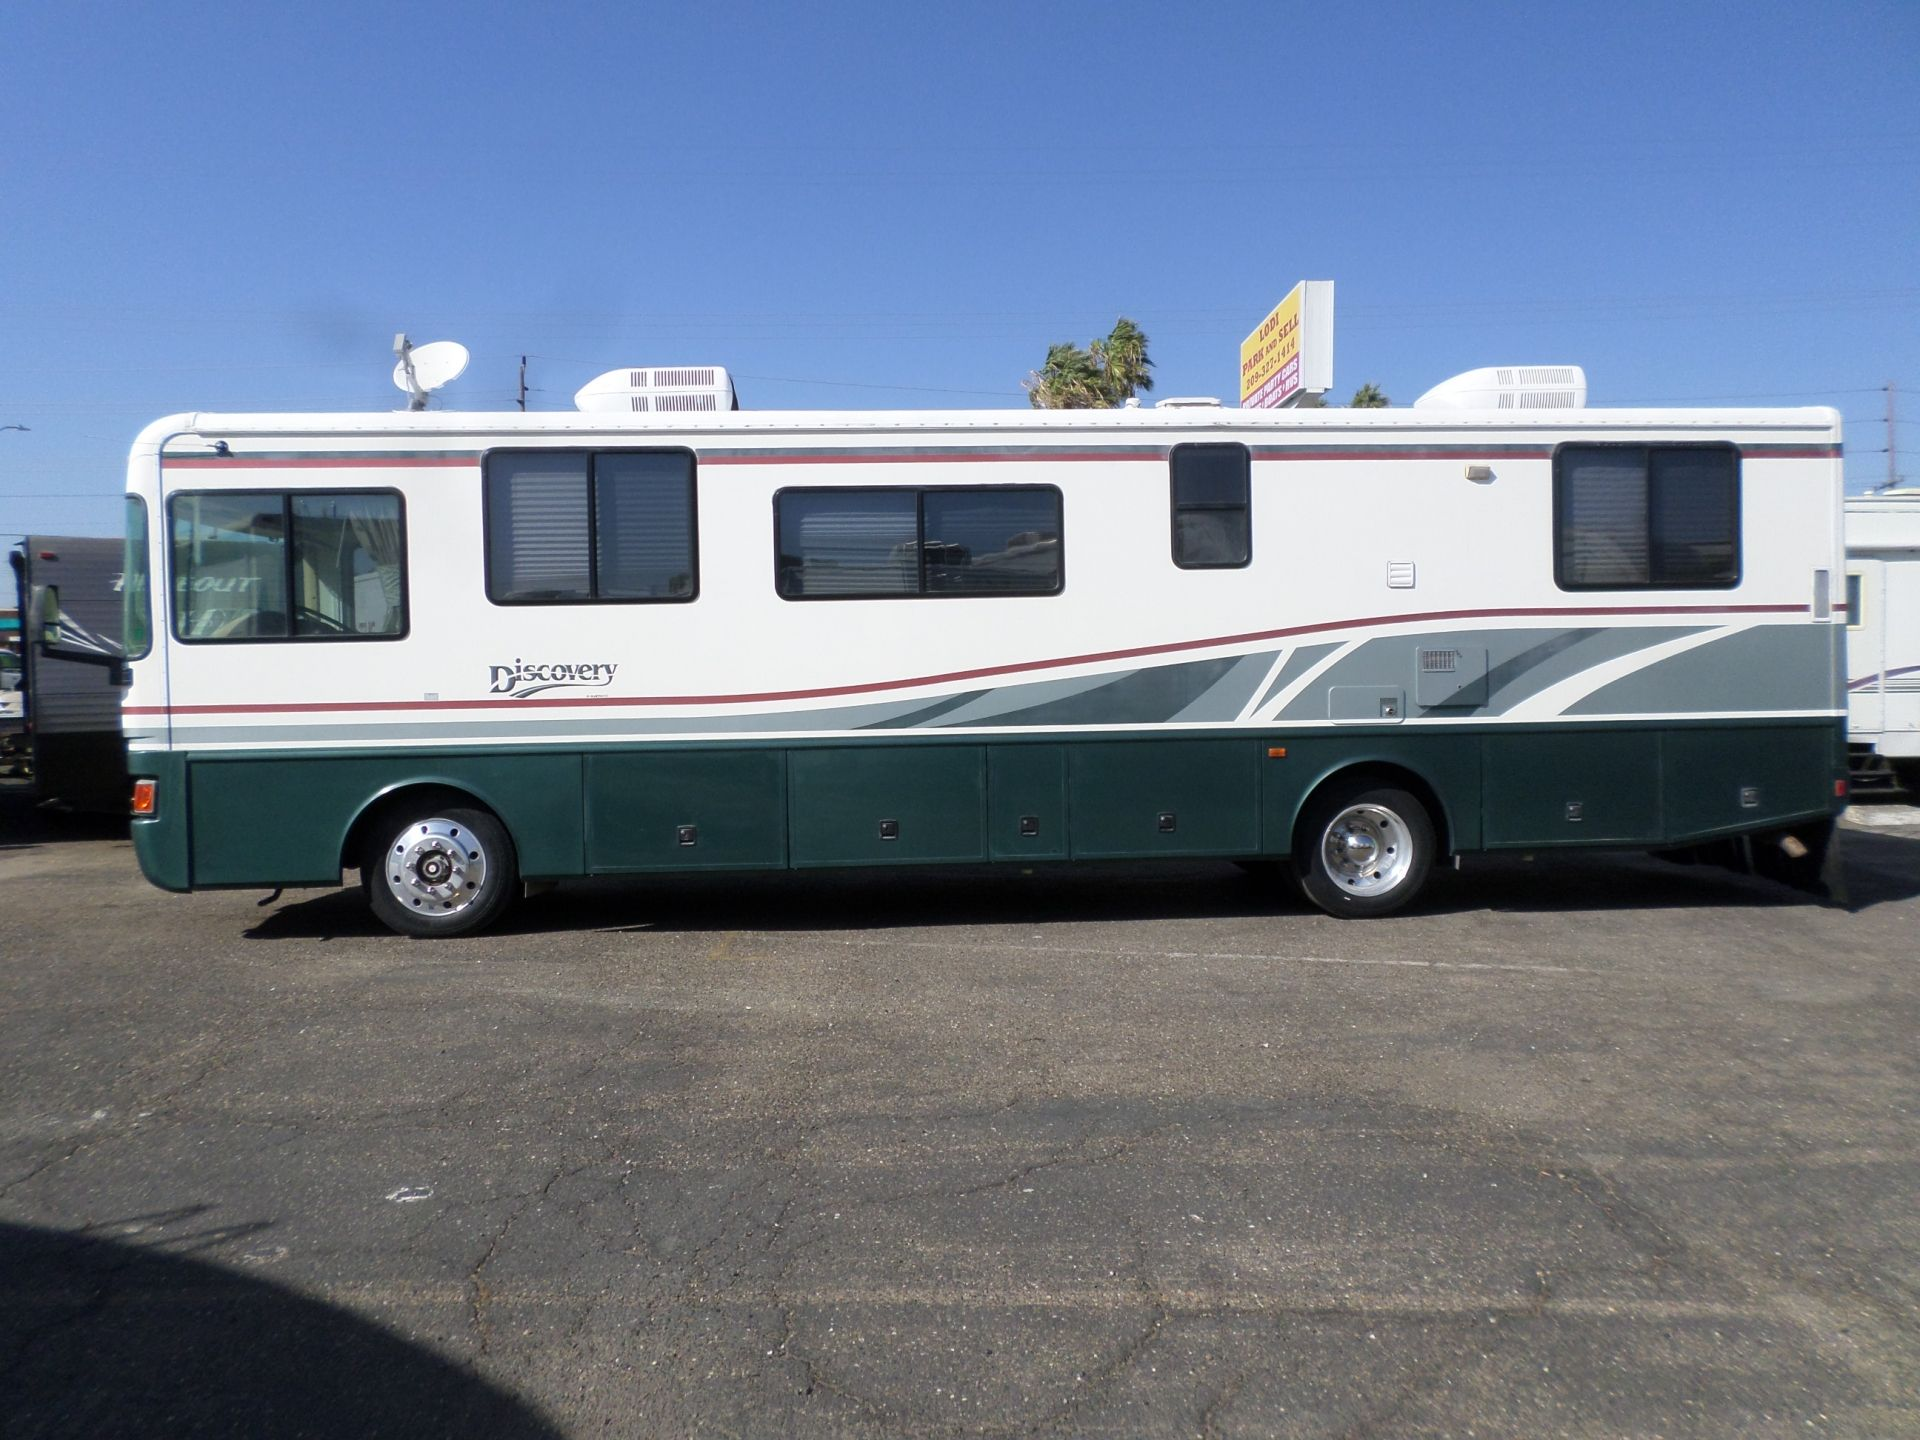 Rv For Sale 1998 Fleetwood Discovery Class A Motorhome Diesel Pusher 38 In Lodi Stockton Ca Fleetwood Discovery Motorhome Rv For Sale